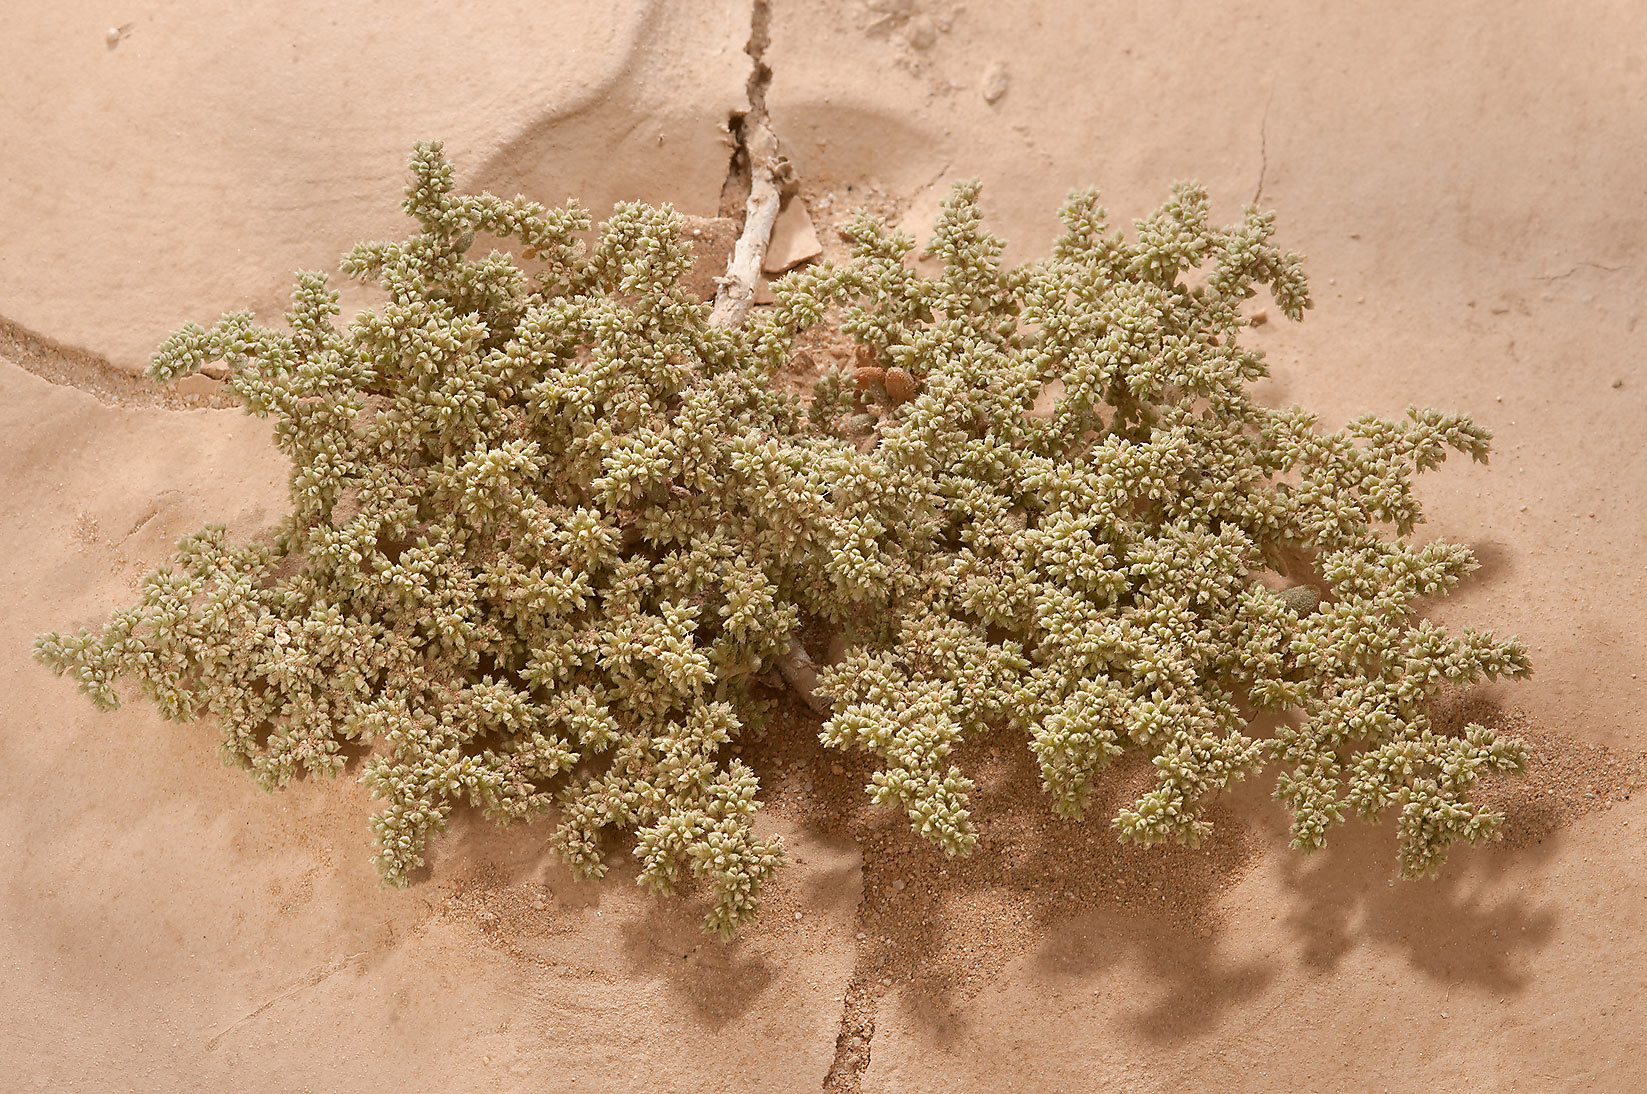 Herniaria hemistemon (local name Ghebayra) with...40 miles south-west from Doha. Qatar